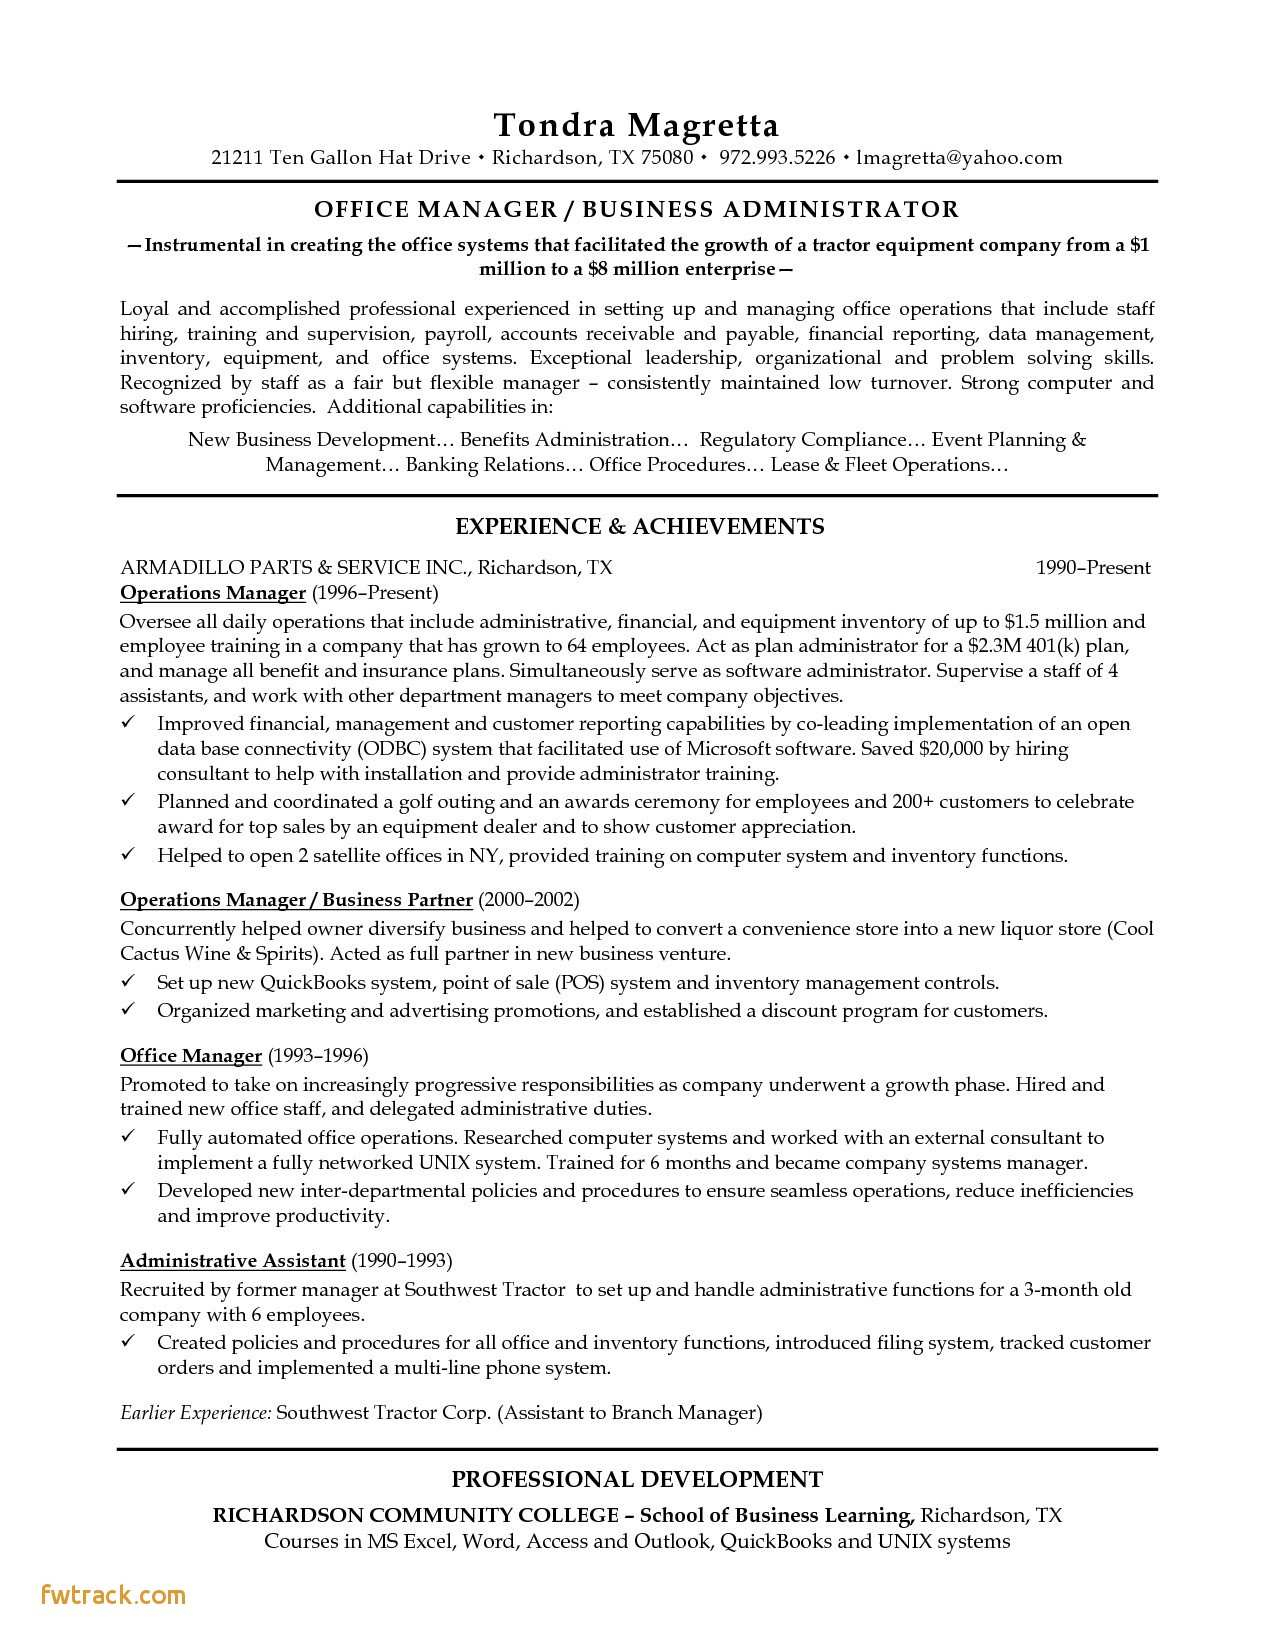 Retail Manager Resume Examples - Resume Examples for Retail Fwtrack Fwtrack